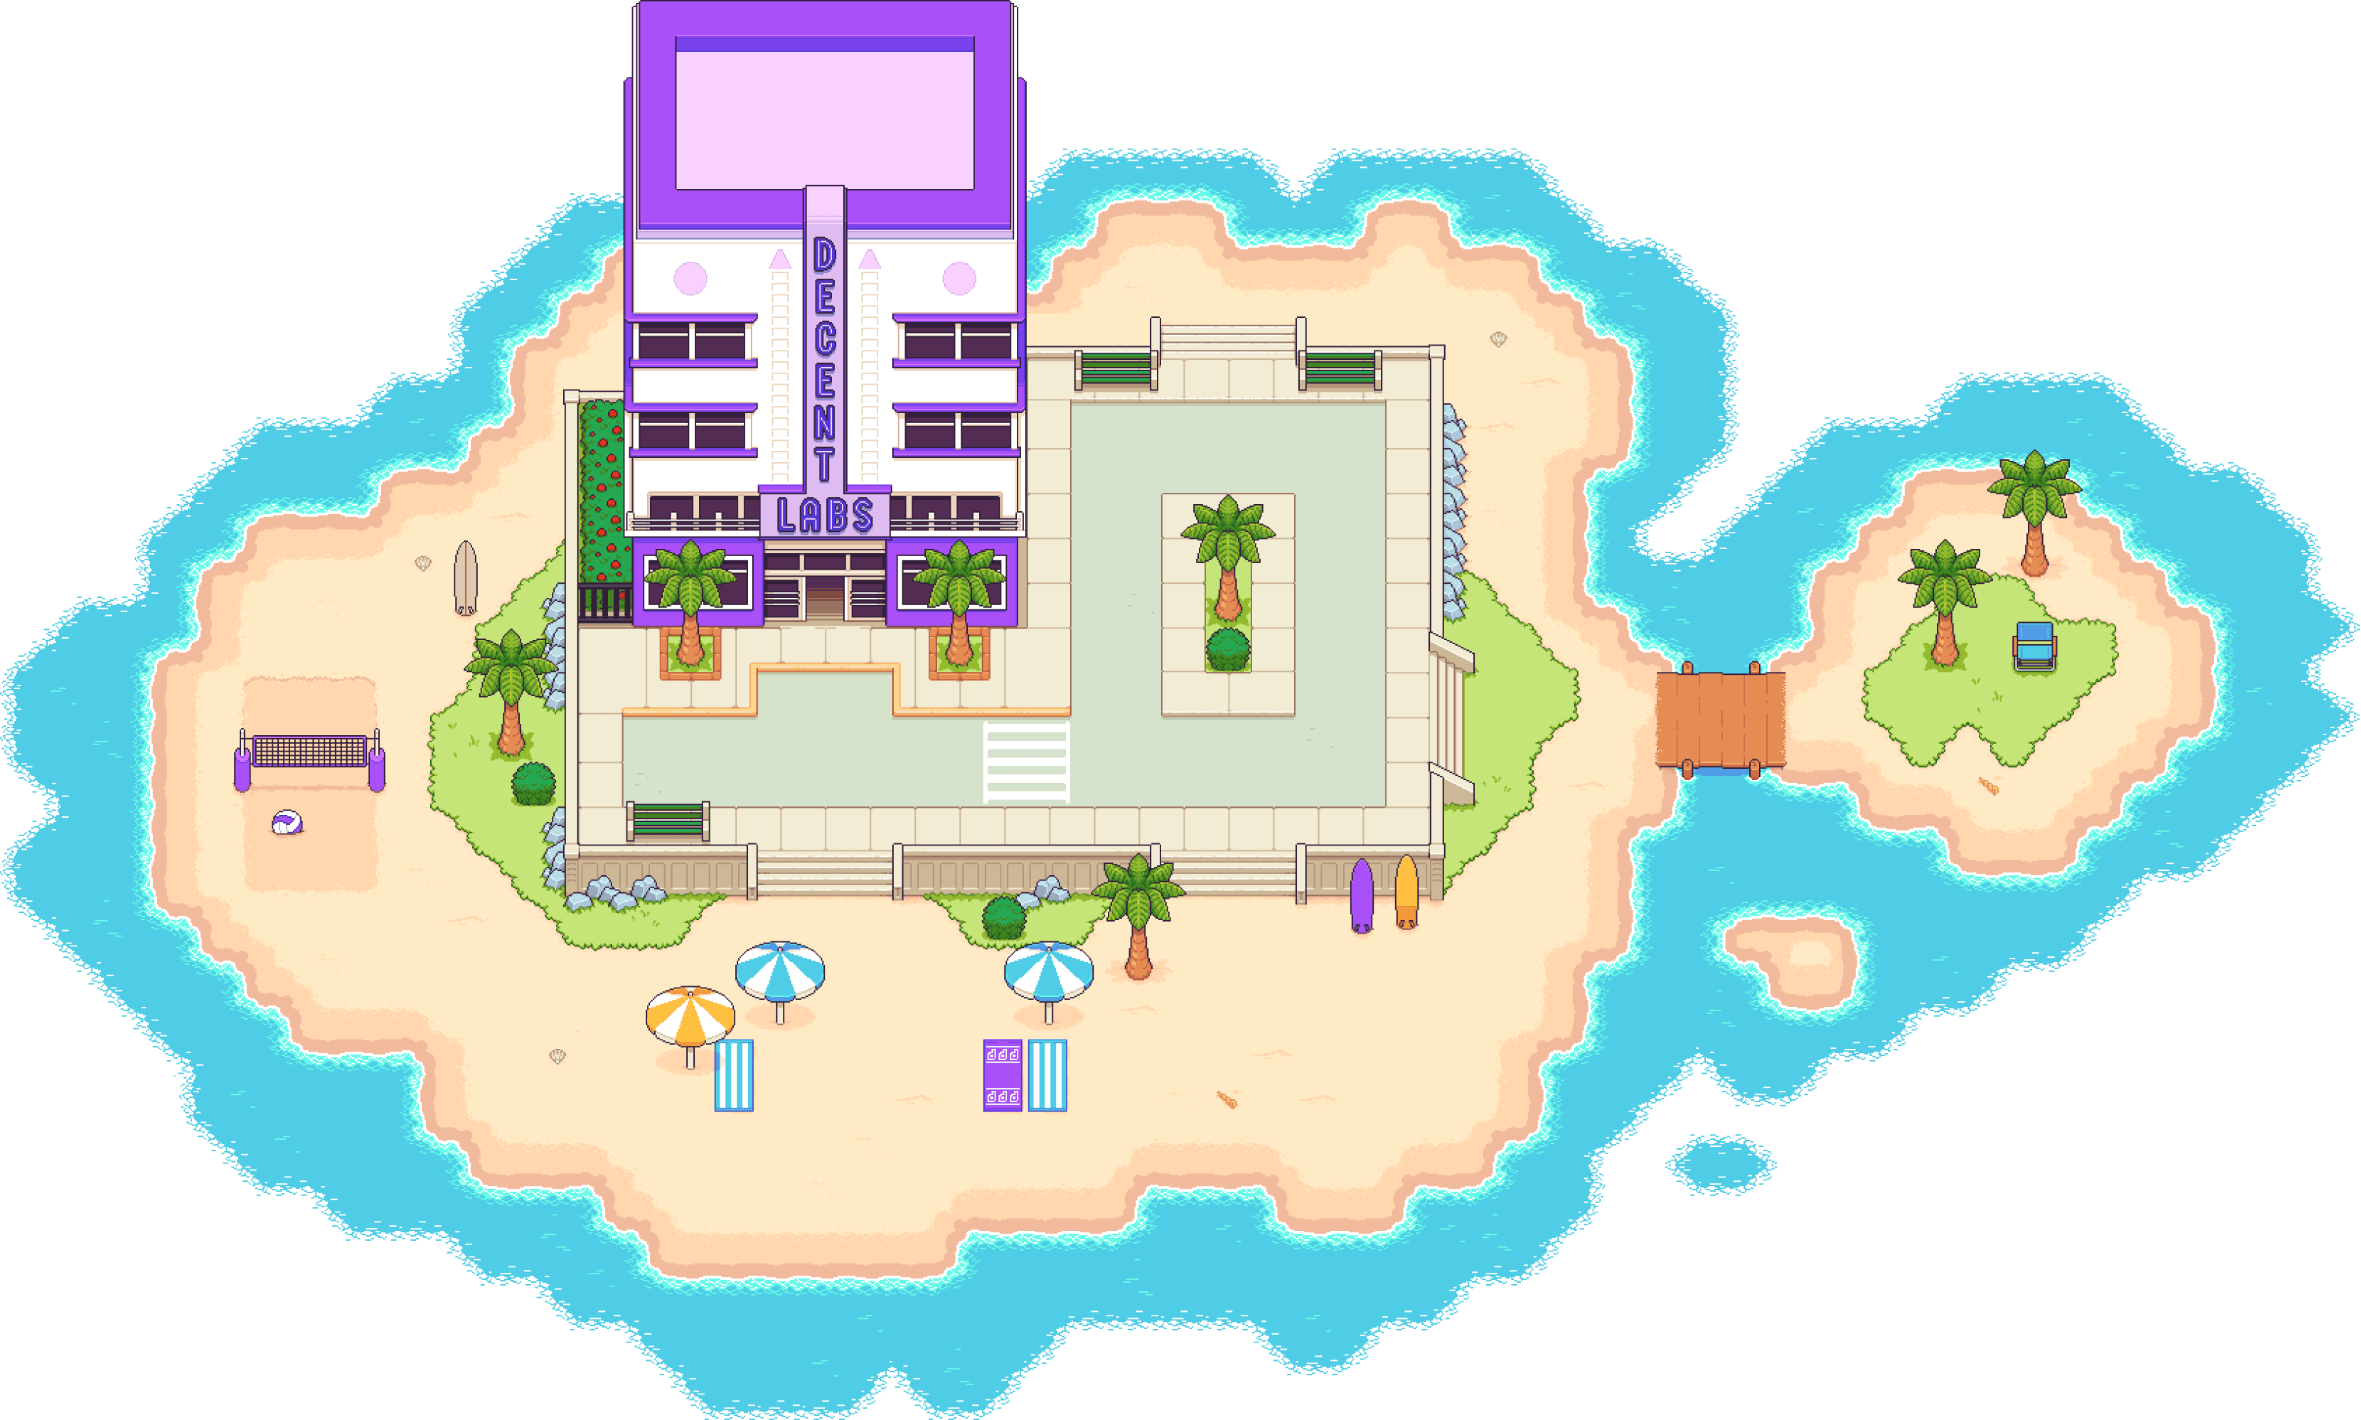 """A pixel art-style illustration of an art deco building on the beach, surrounded by water. The building has a """"Decent Labs"""" sign"""